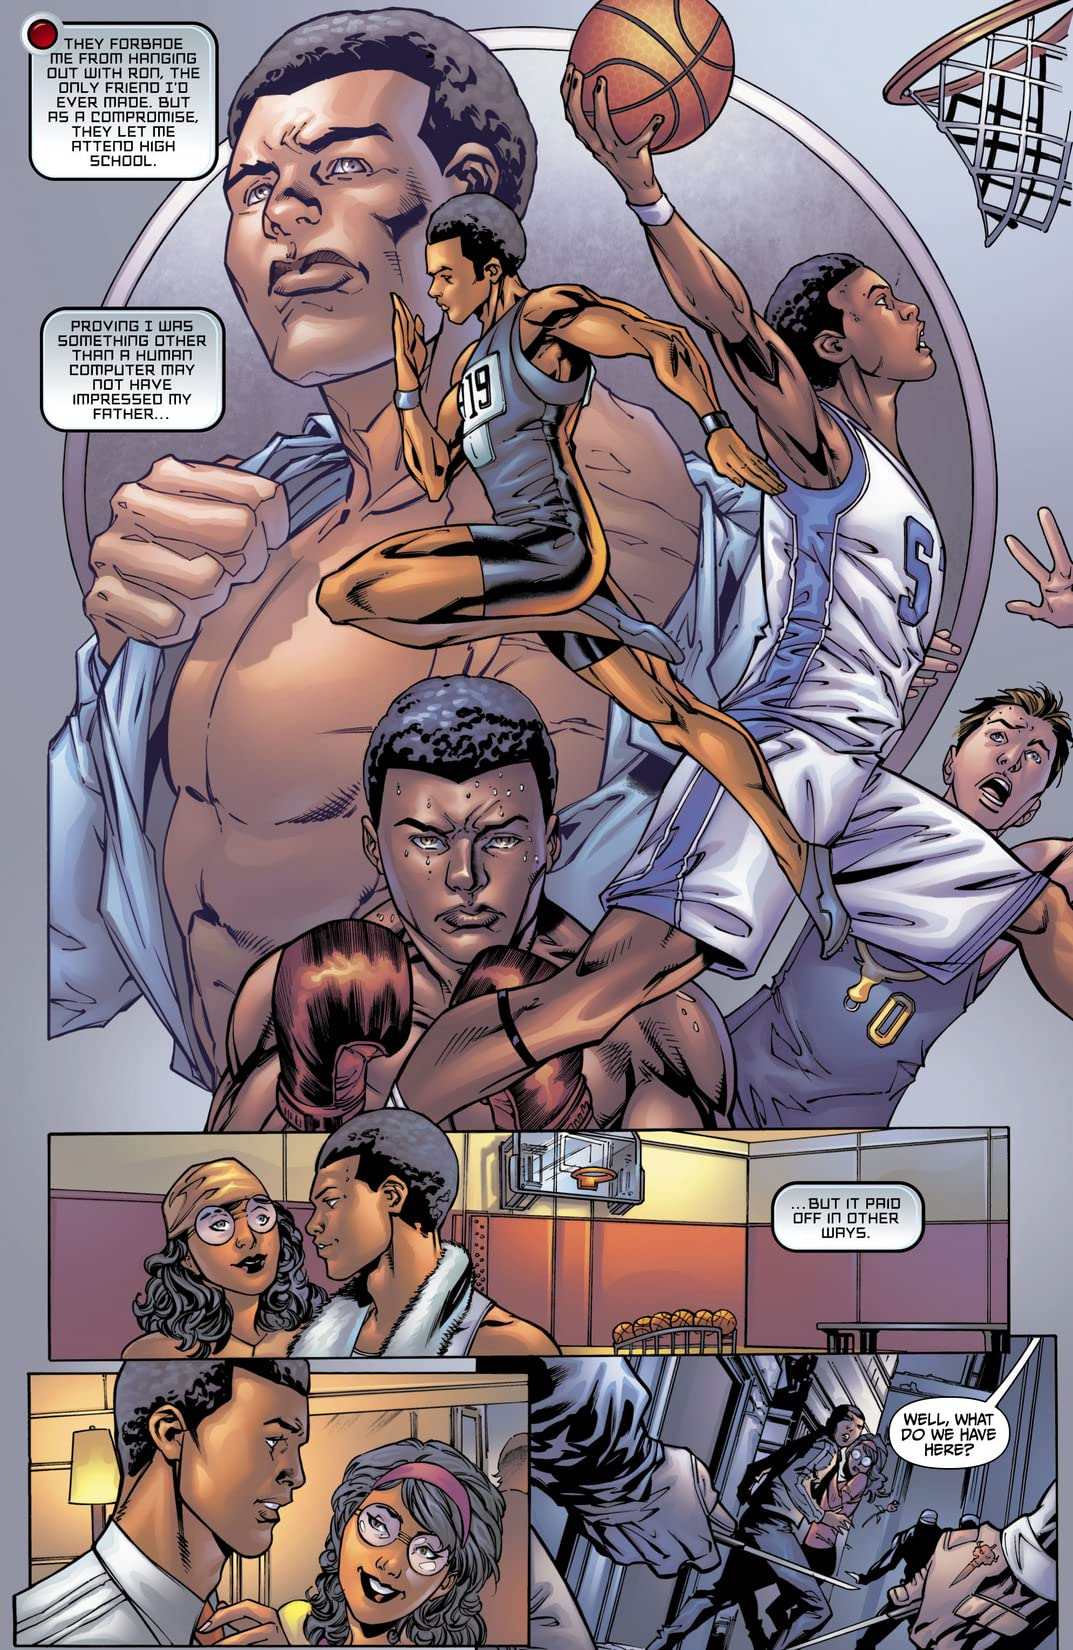 DC Special: Cyborg (2008) #1 (of 6)